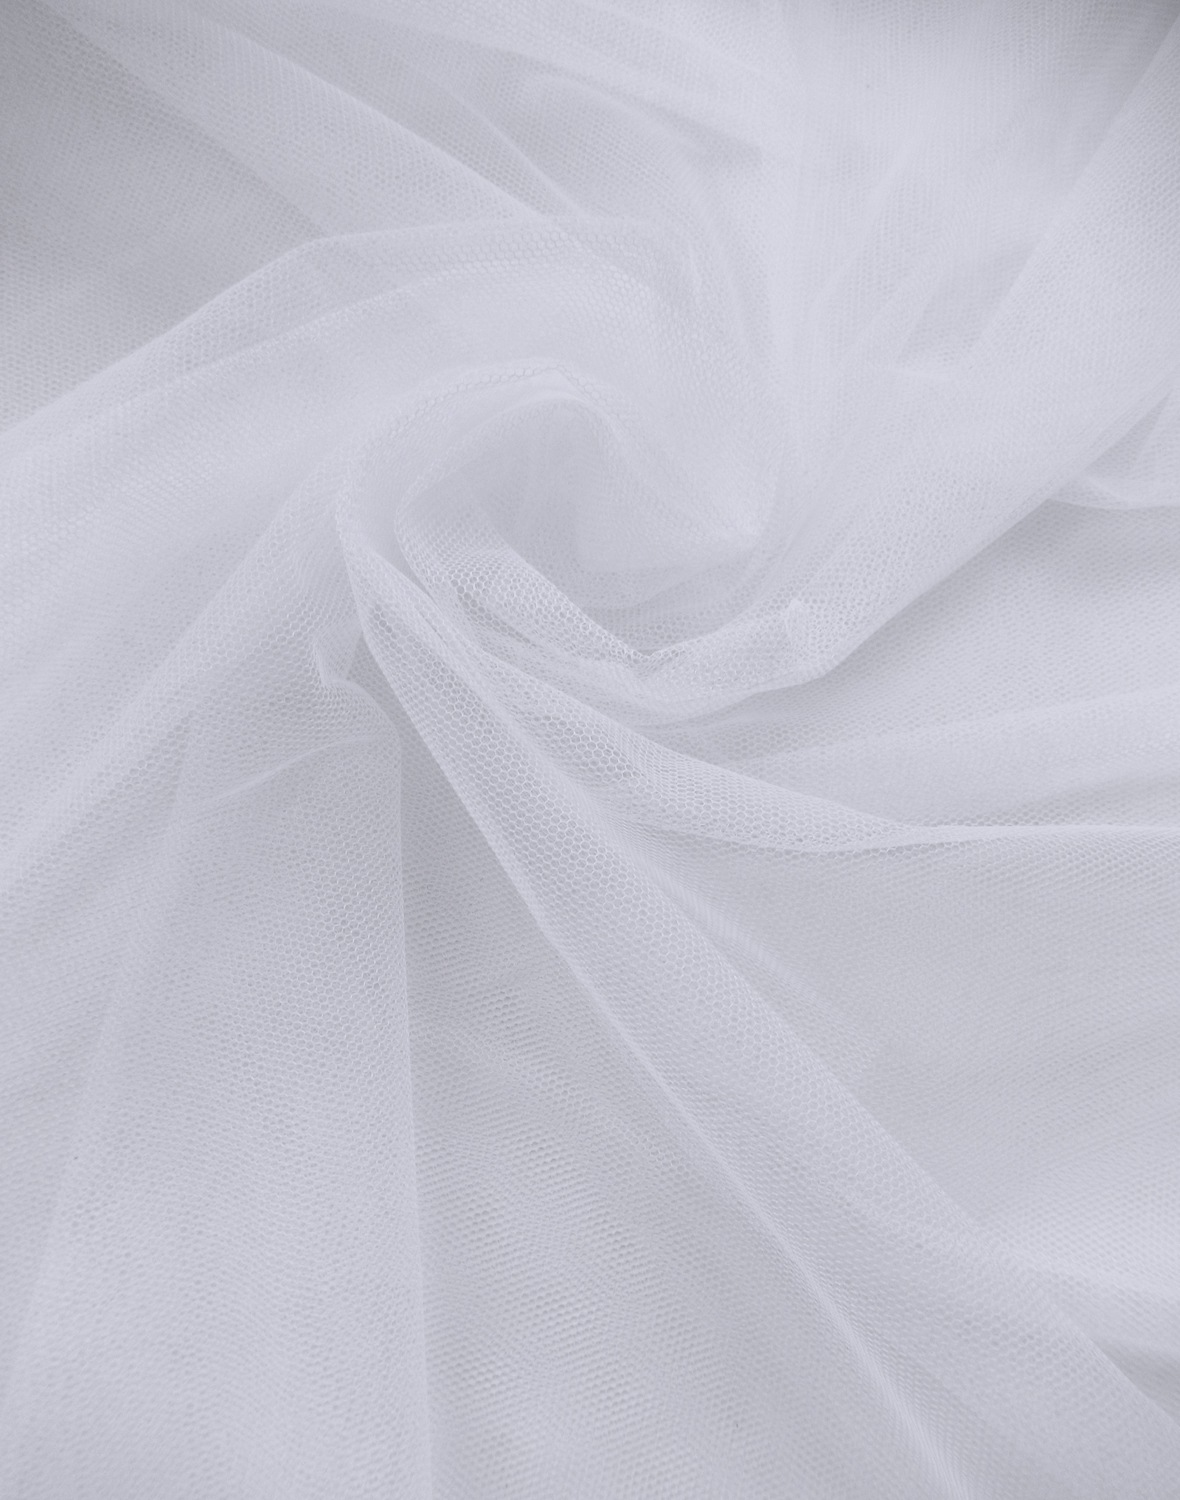 English Tulle Tulle Amp Netting Wholesale Apparel Fabric